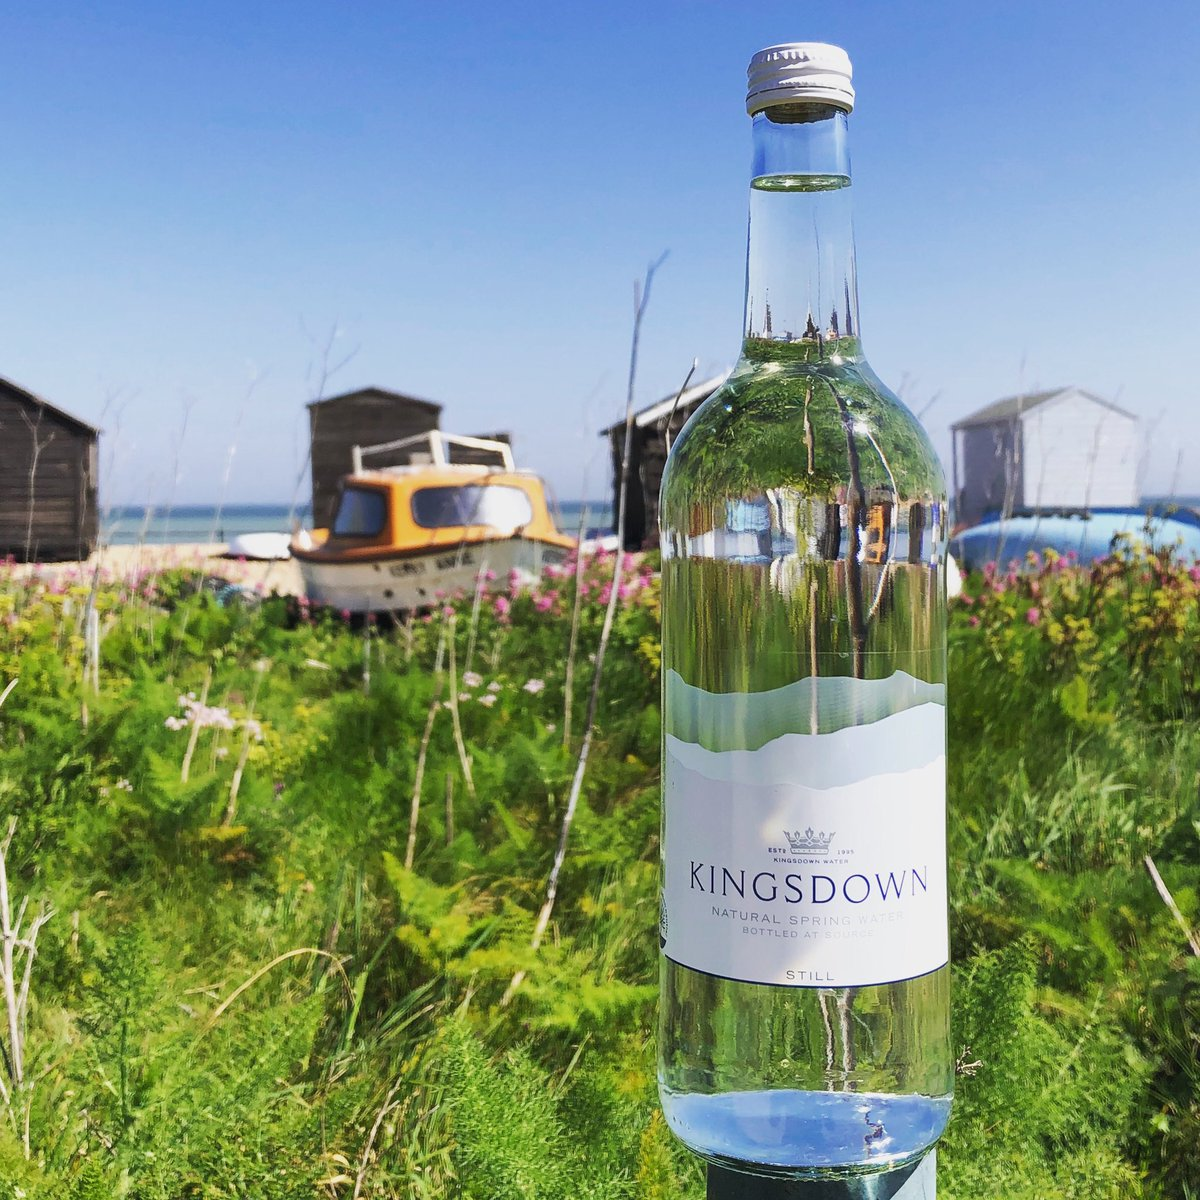 In these challenging & sunny times, it's more important than ever to stay hydrated  Kingsdown Water is available from our online store in 330ml, 500ml, 750ml and 1 litre glass bottles. Track your daily intake by using one of our bottles 🙌🏼 #SaturdayVibes  https://t.co/kW942PPt0J https://t.co/MZ0MJGbIU9